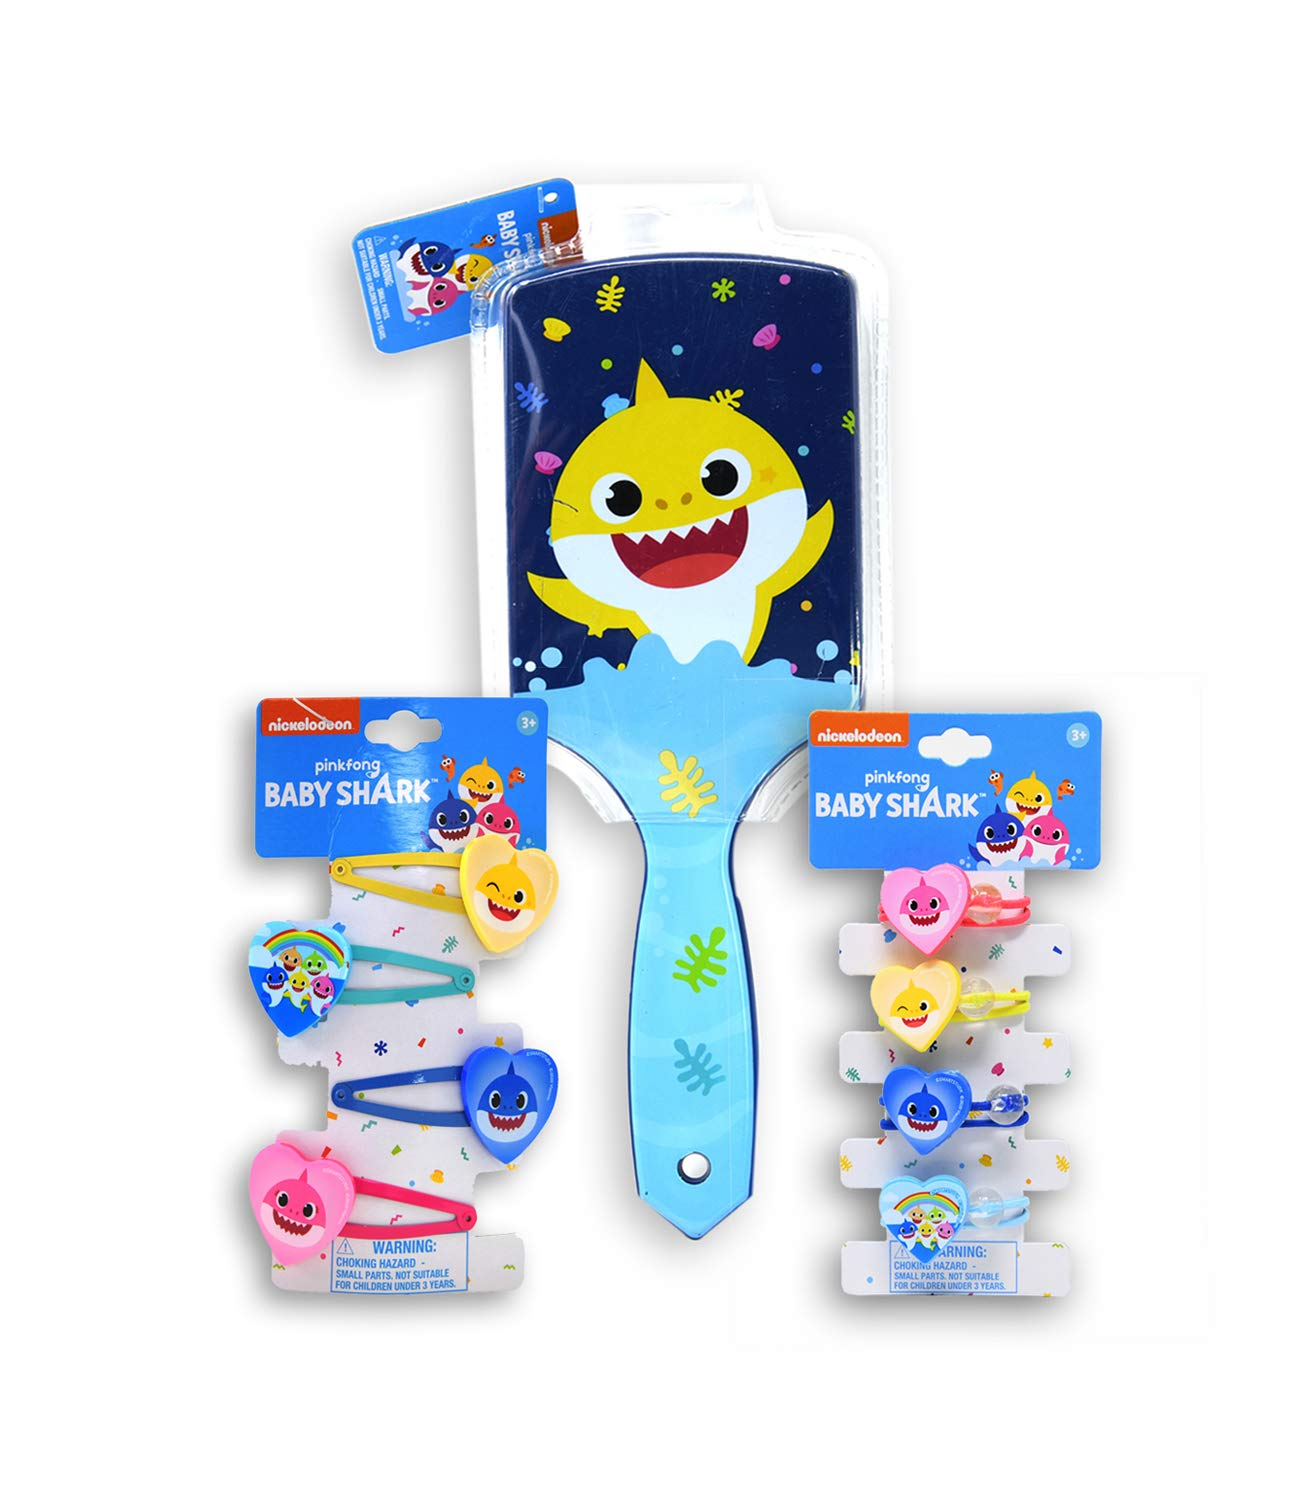 Pinkfong Baby Shark Hair Set - Shark Family Girls Toy Accessories Total 9 pieces, 4 Hair Ponies, 4 Snap Clips with Blue Paddle Brush